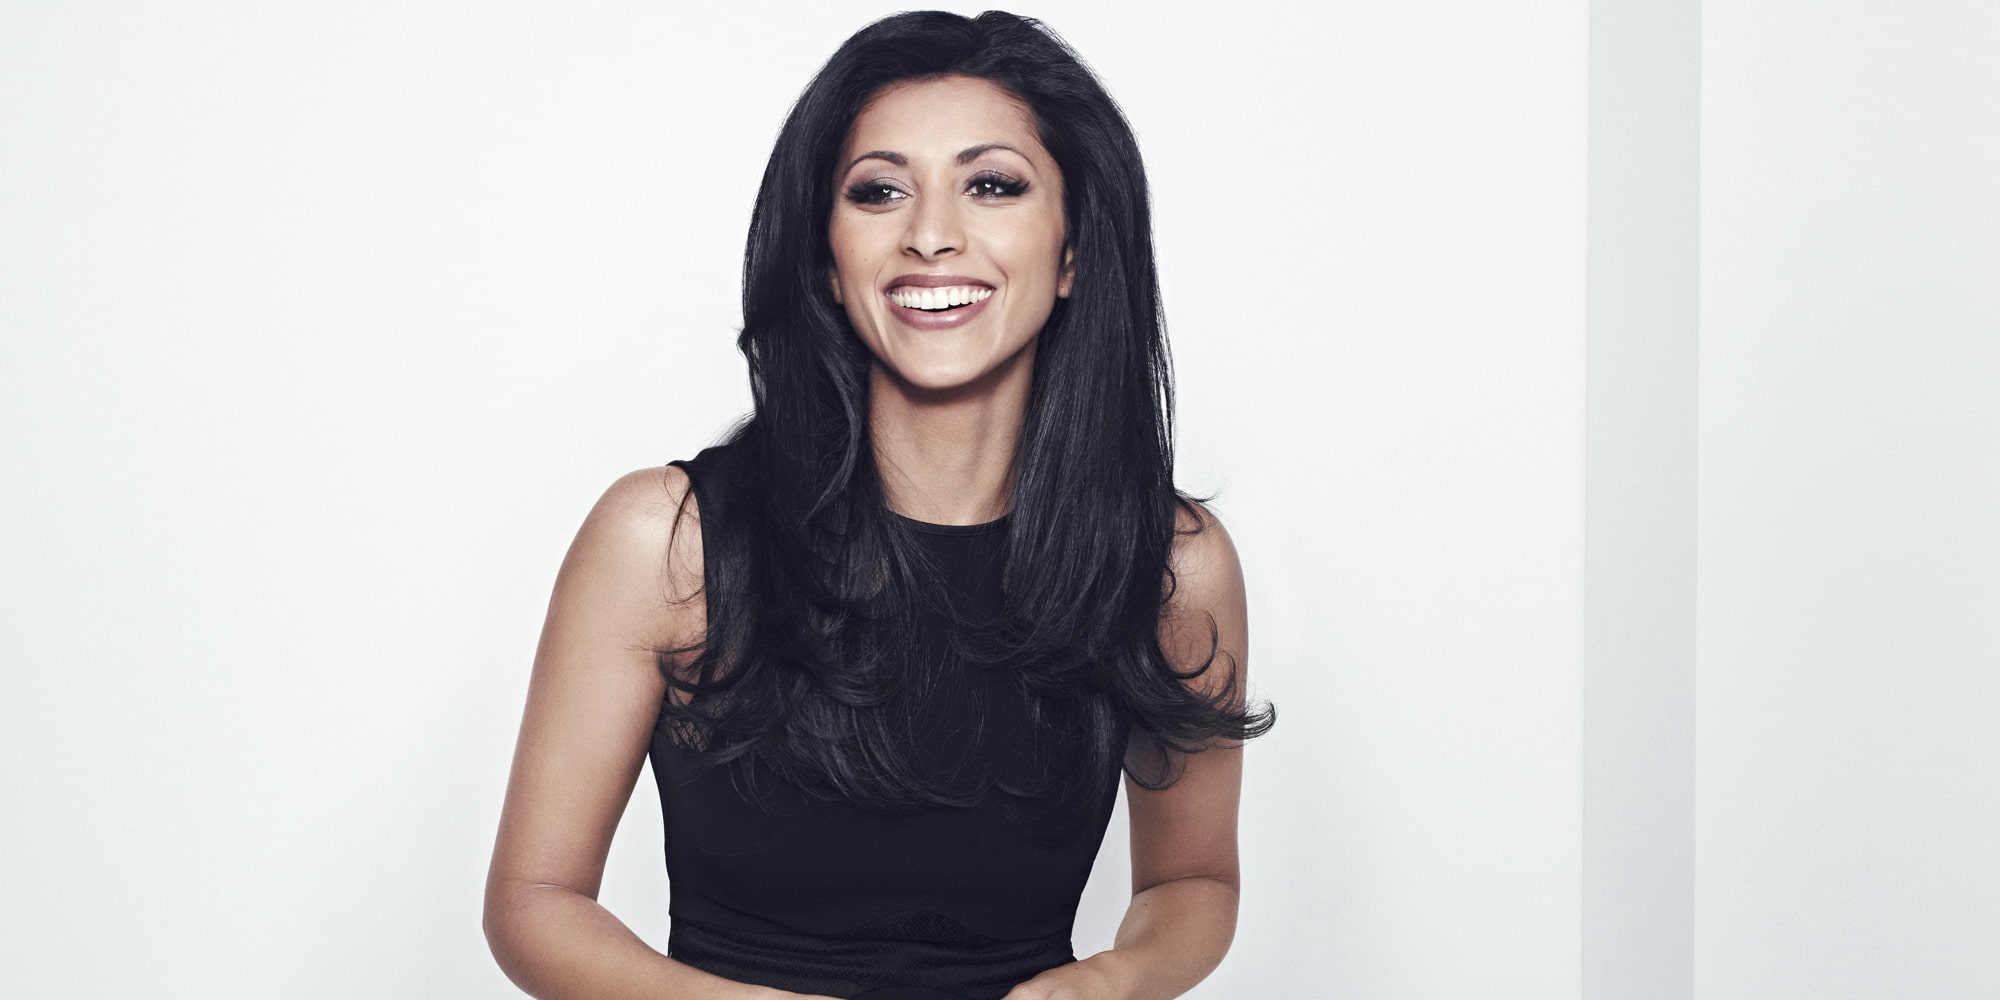 reshma shetty net worth 2018 amazing facts you need to know